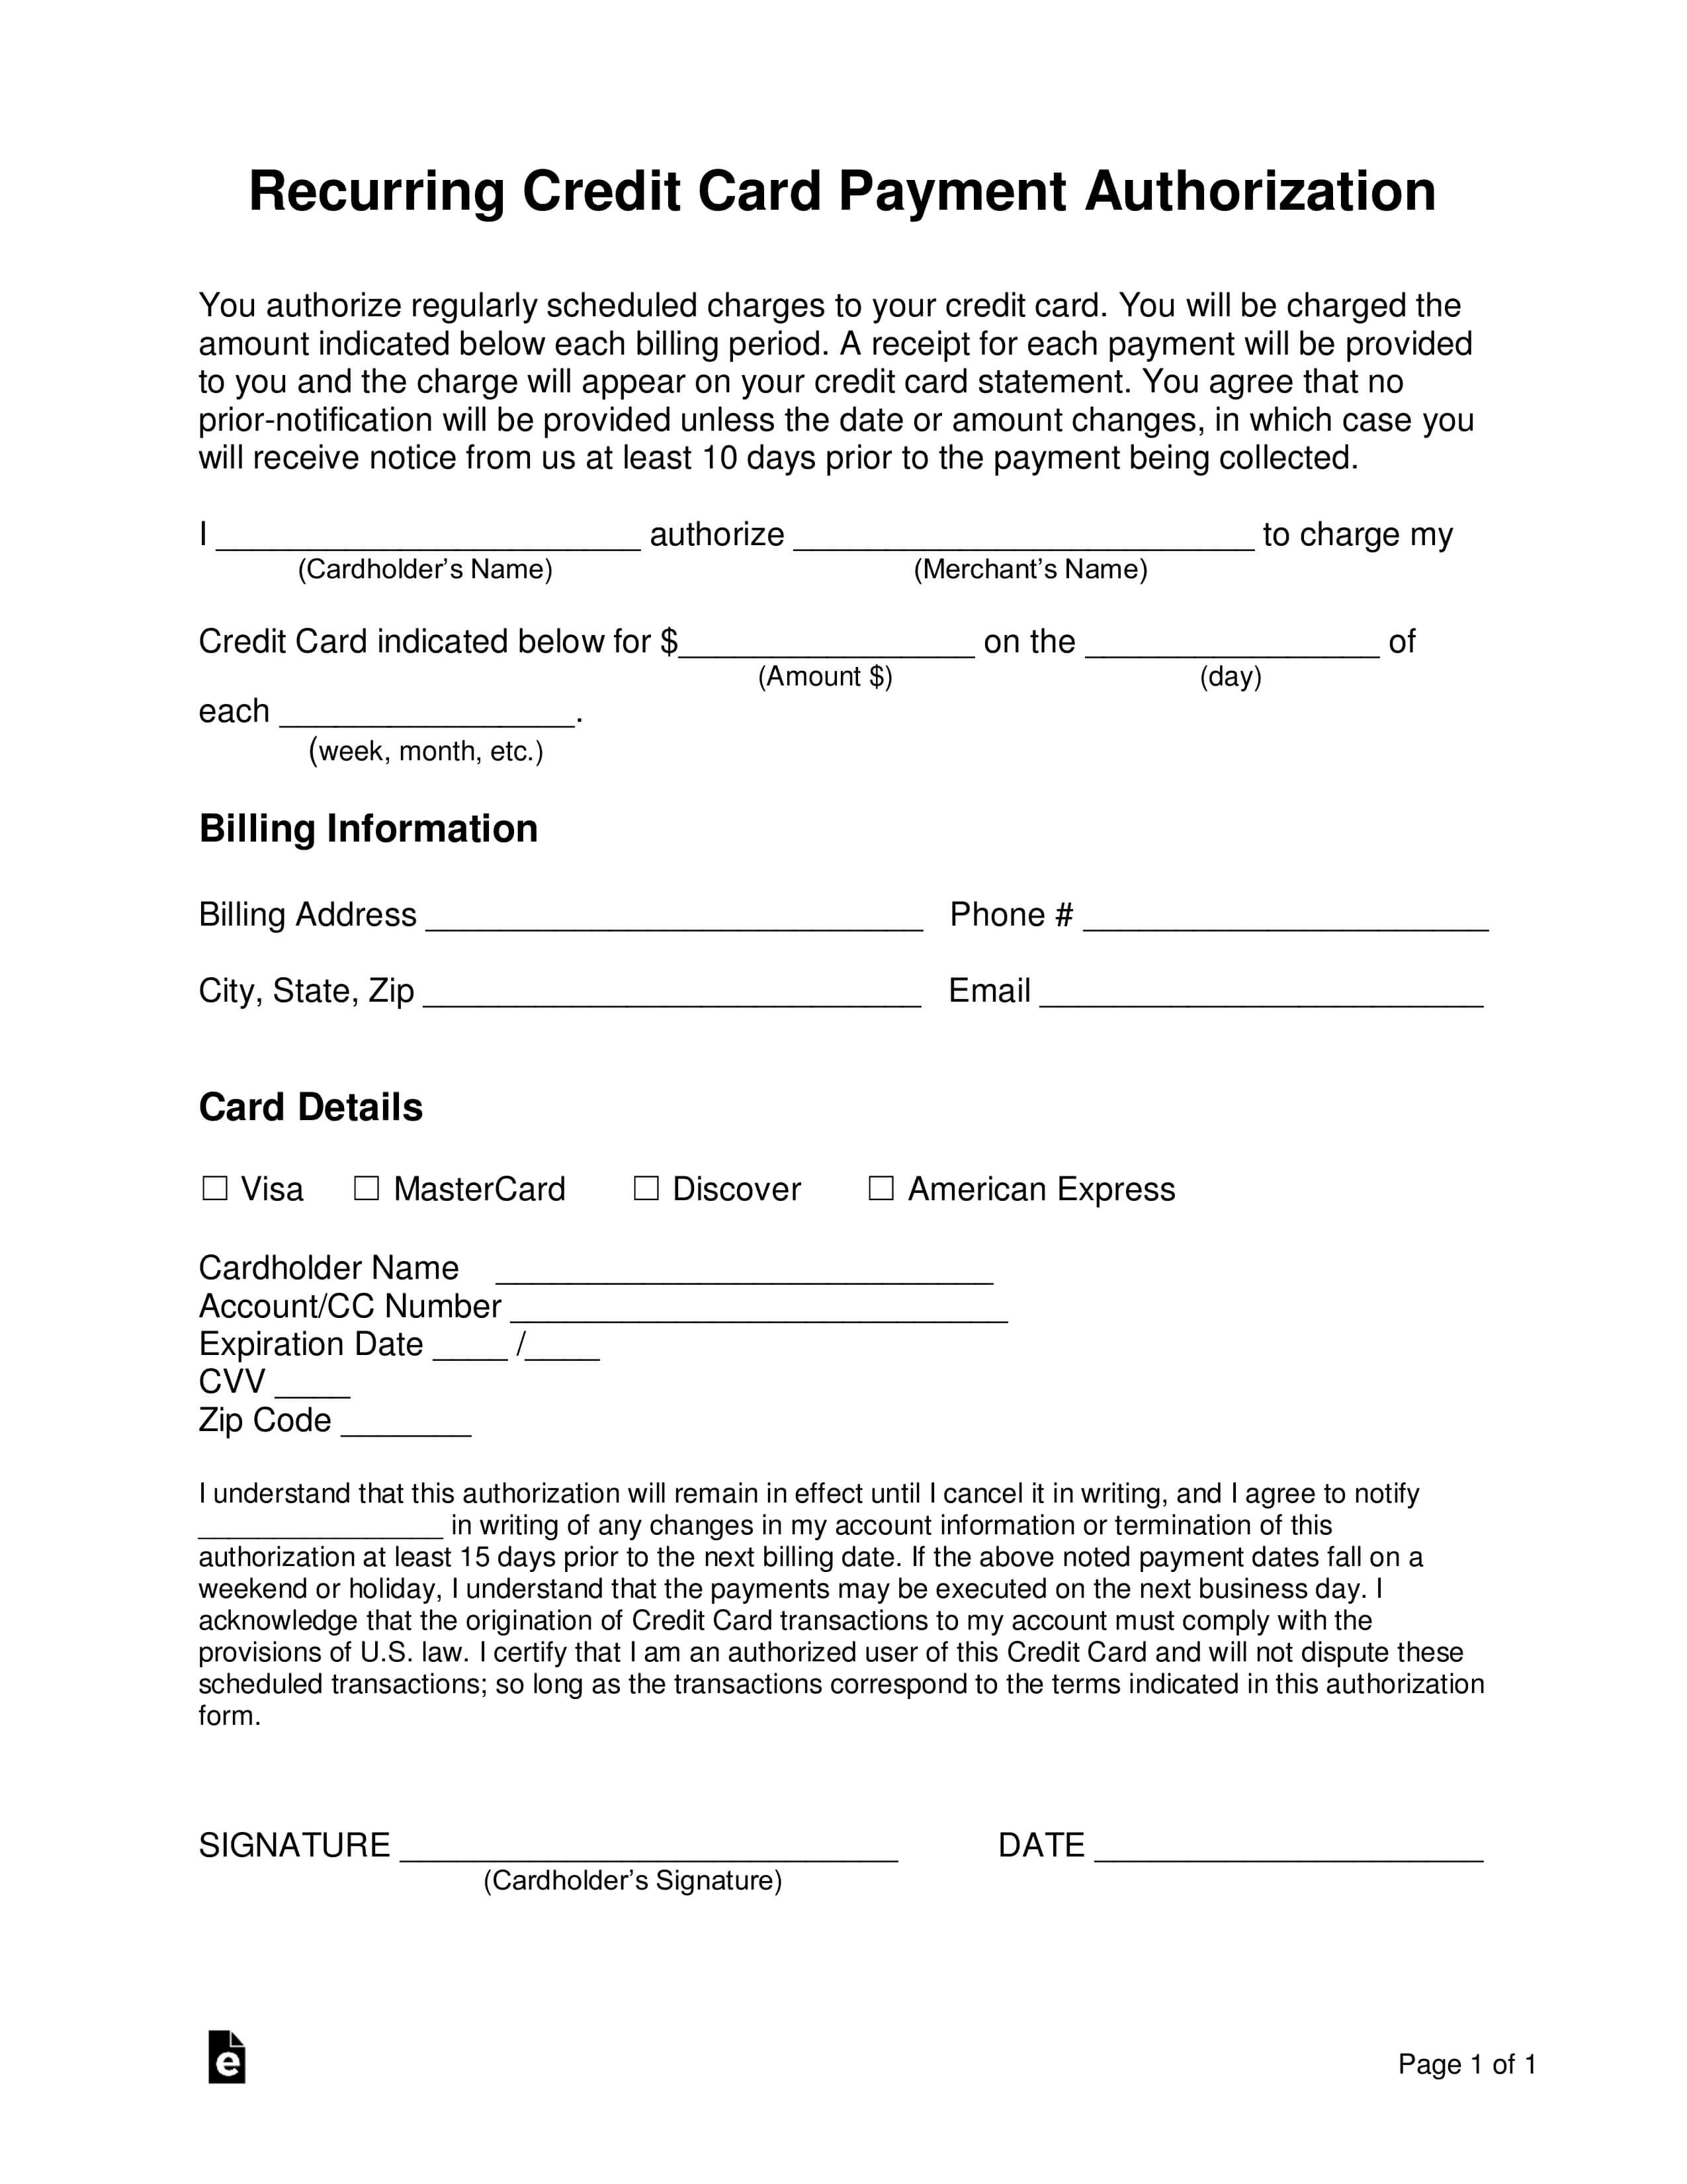 Free Recurring Credit Card Authorization Form - Word   Pdf with regard to Credit Card Billing Authorization Form Template